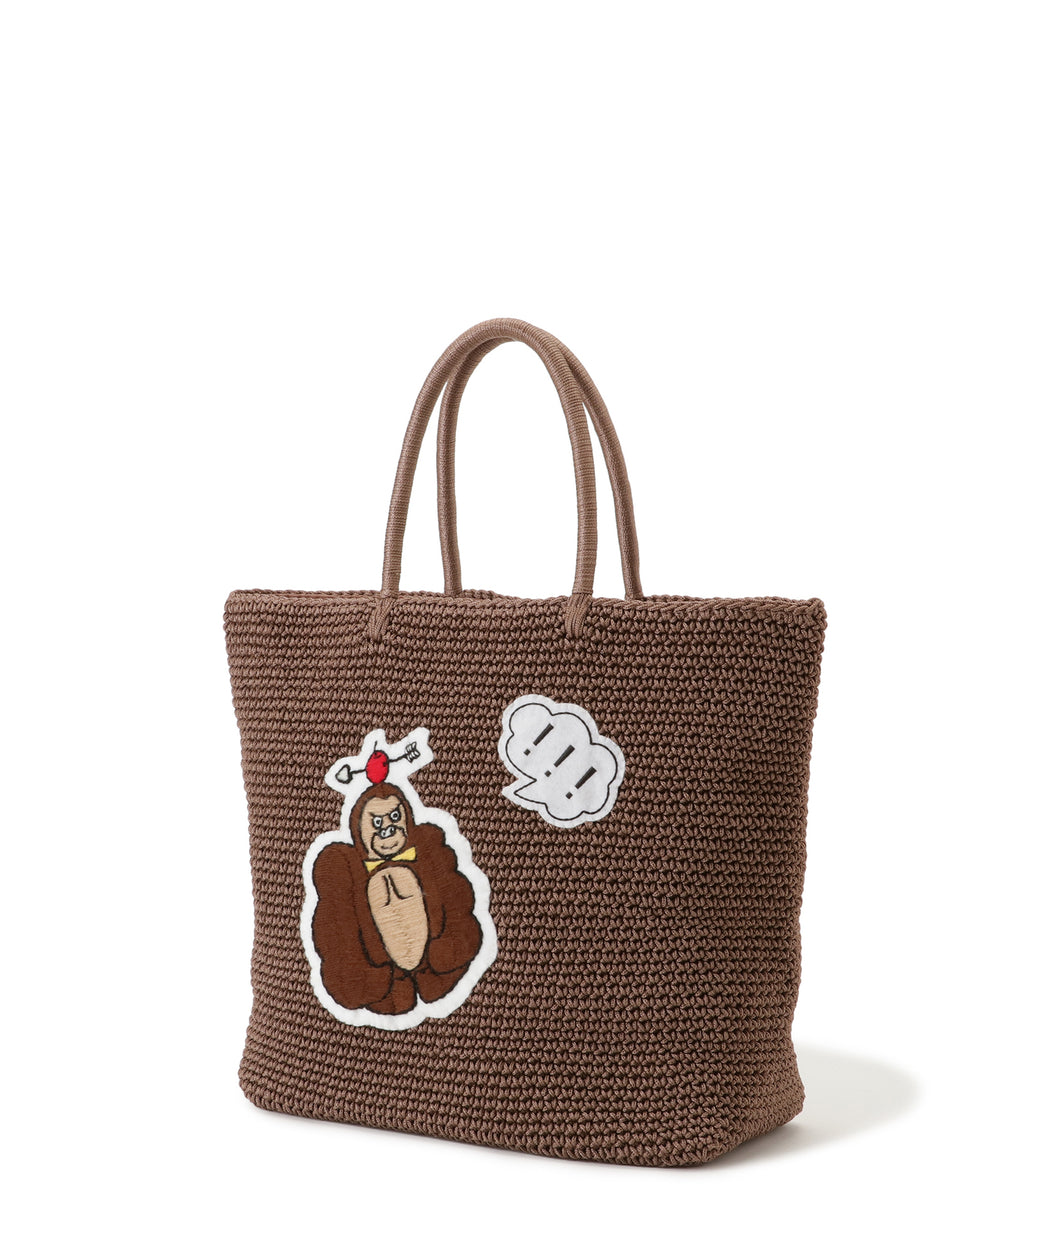 Cord bag animal motif (M size)